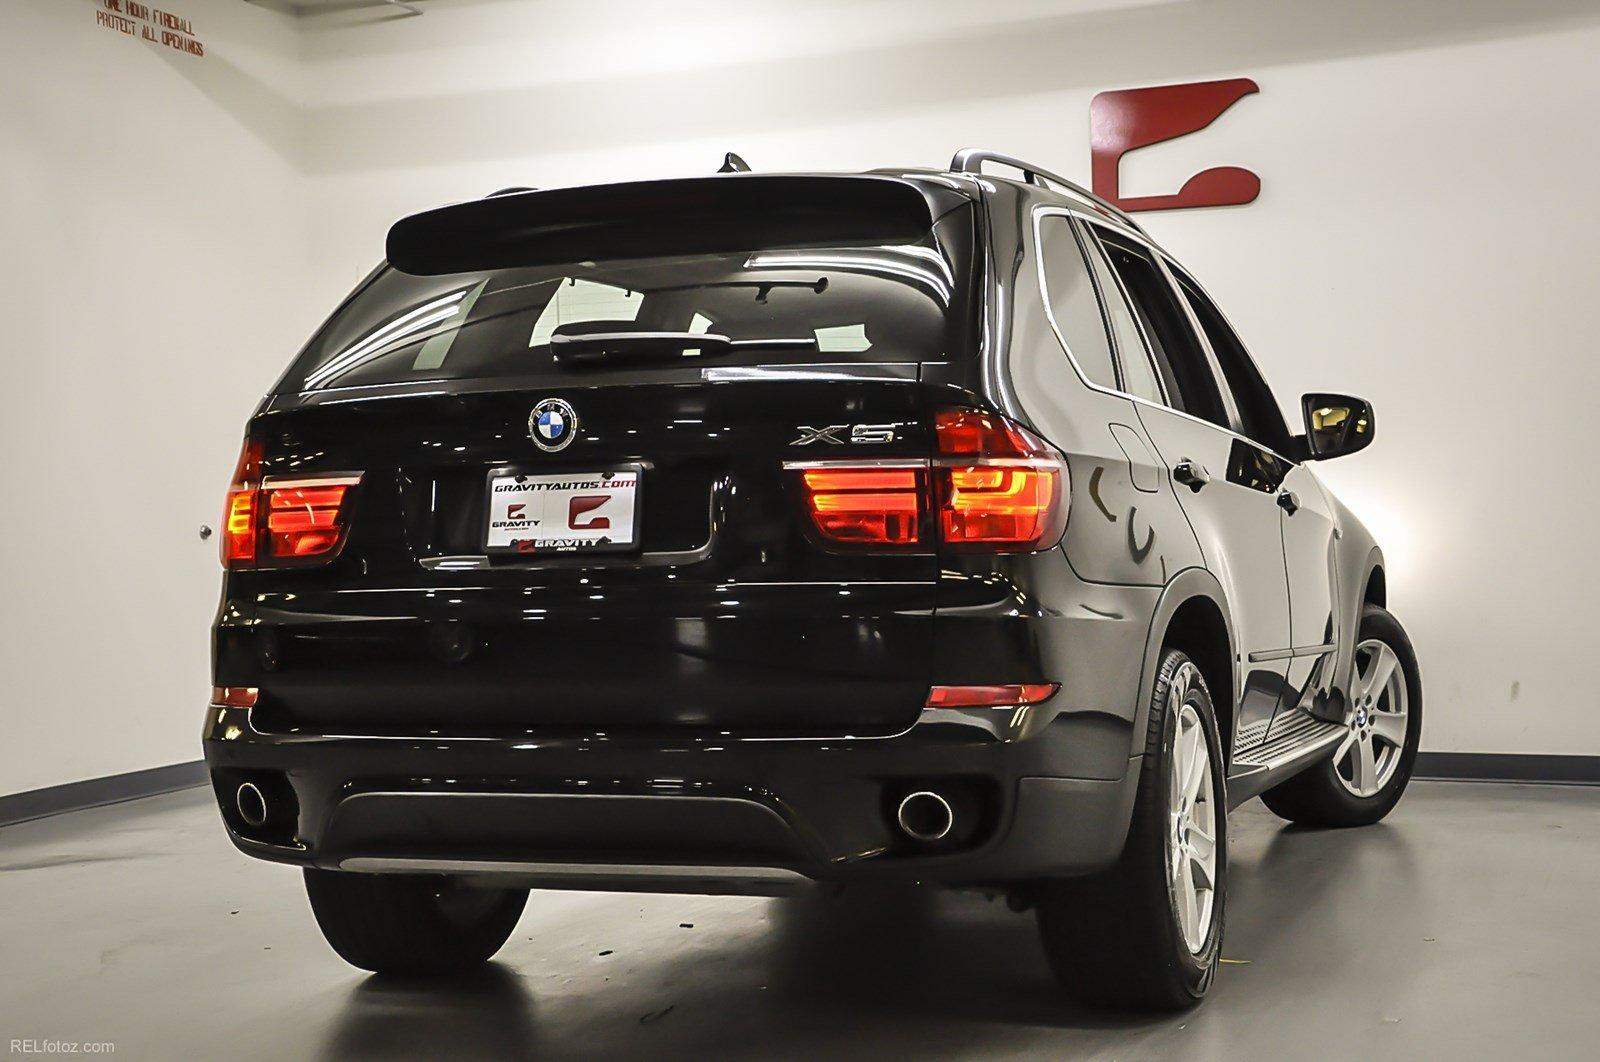 2013 Bmw X5 Xdrive35d Stock B94457 For Sale Near Marietta Ga Trailer Wiring Used